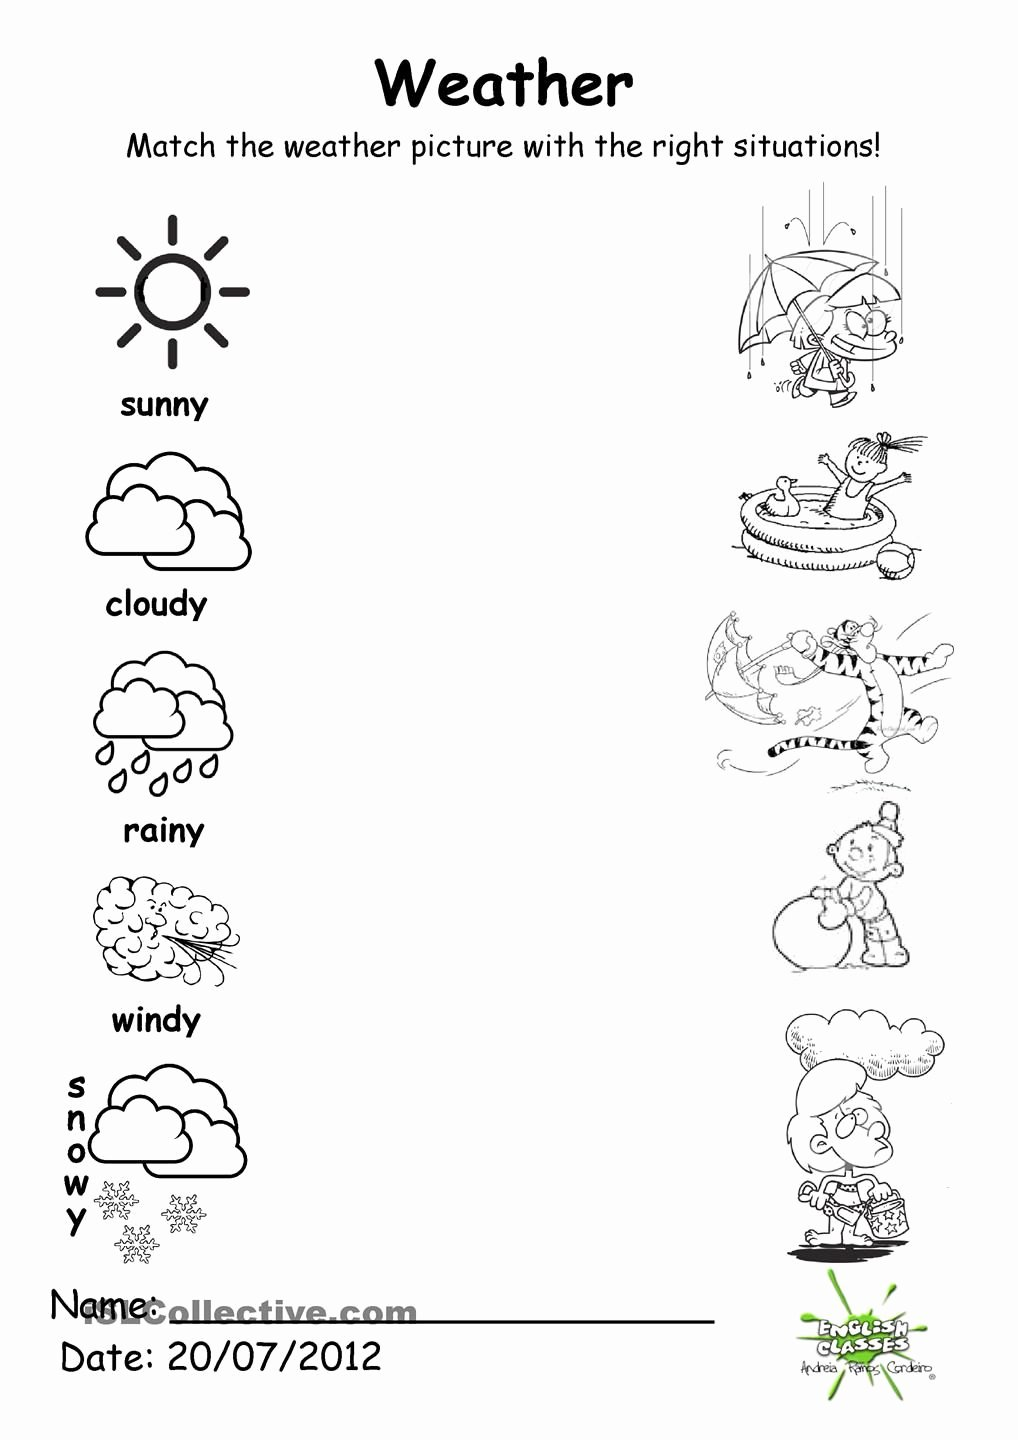 Weather Worksheets for Preschoolers Unique Weather Match with Images